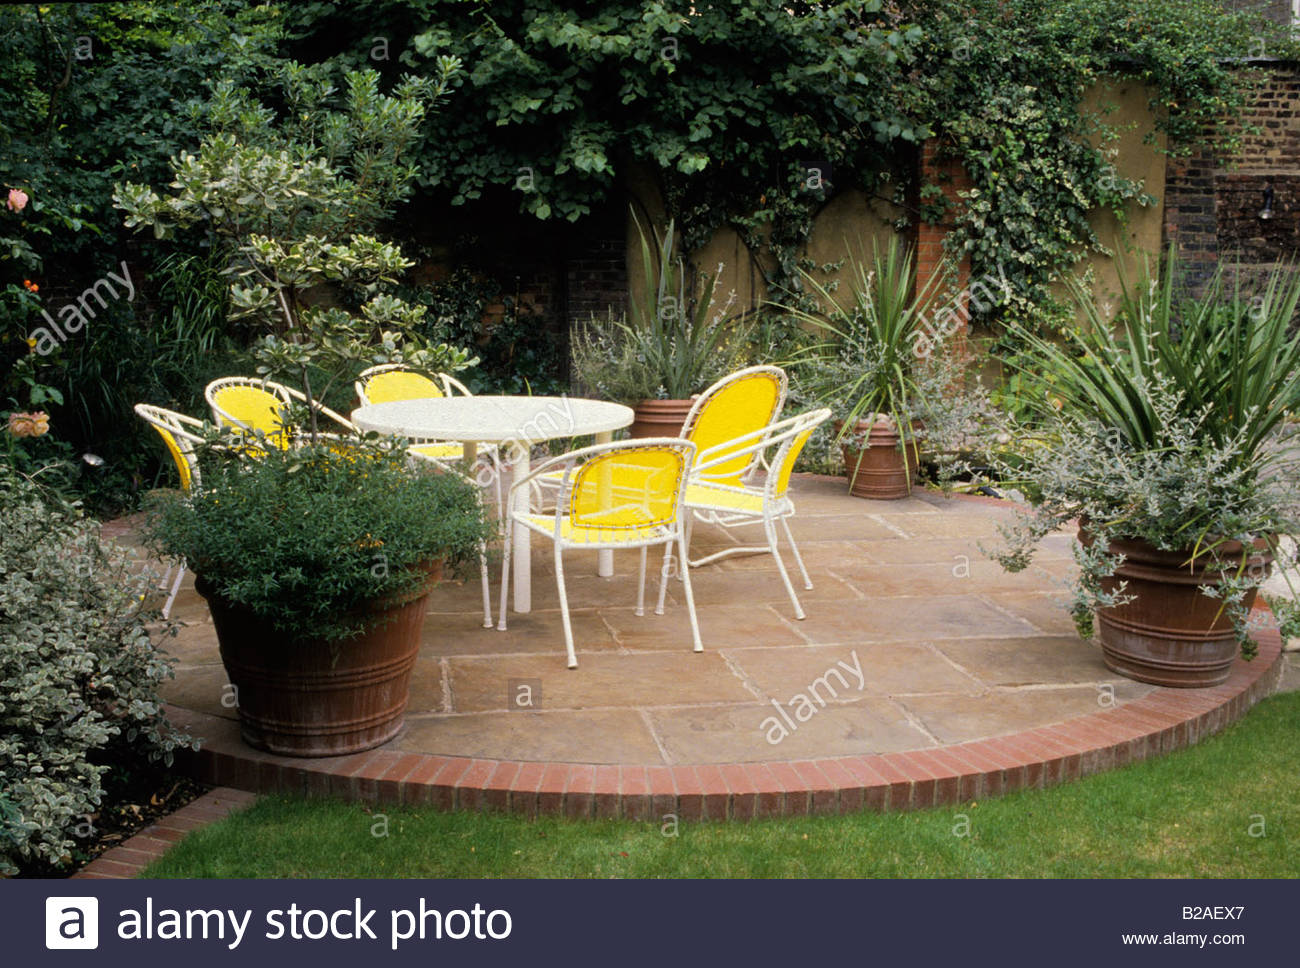 Stock Photo   Private Garden London Circular Brick And Stone Patio Area  With Table And Chairs At Bottom Of Garden